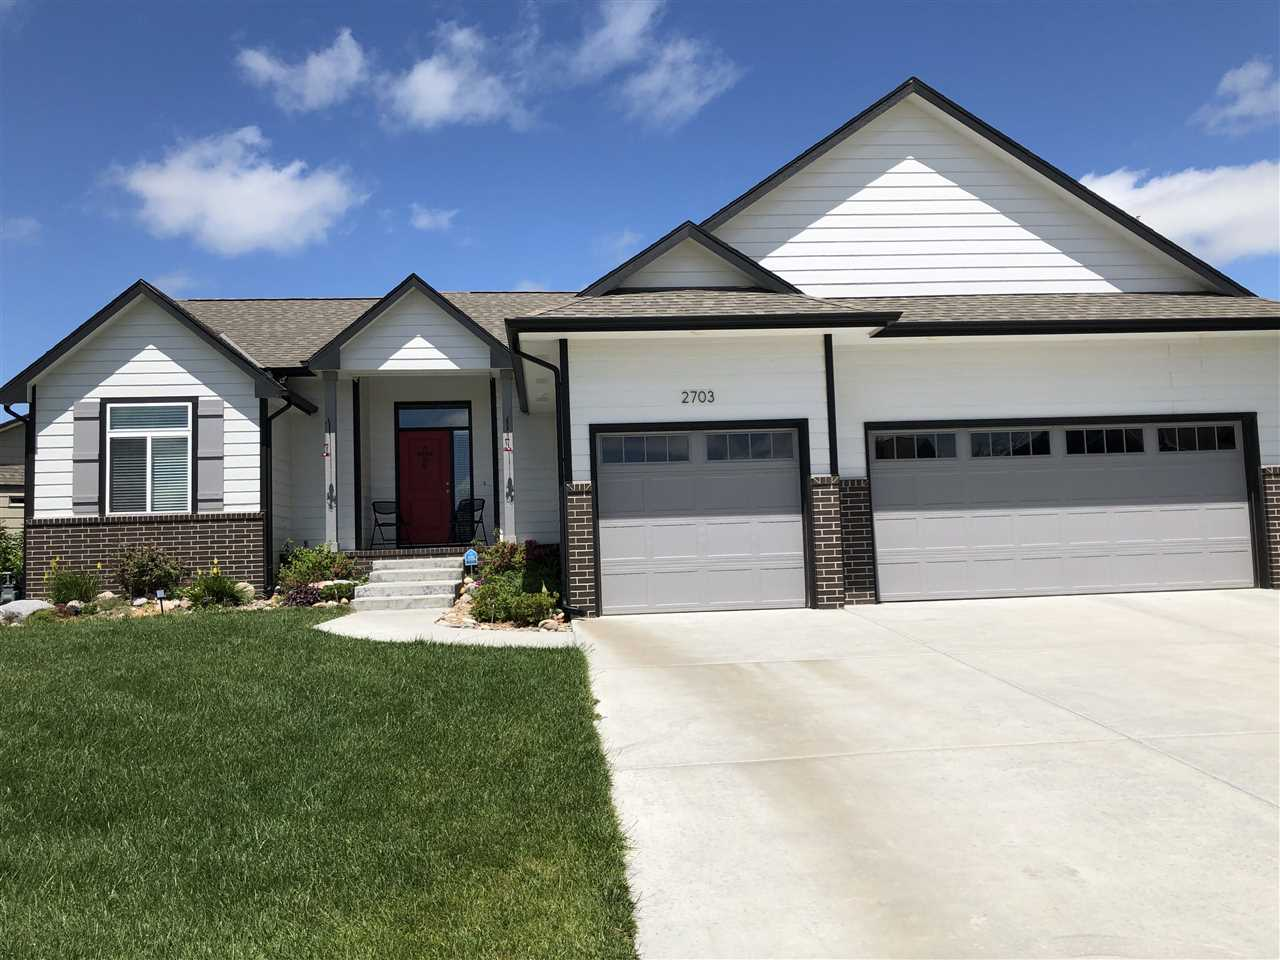 Beautiful 3 bedroom, 3 full bath home in Copper Crest Addition. This better than new home features a